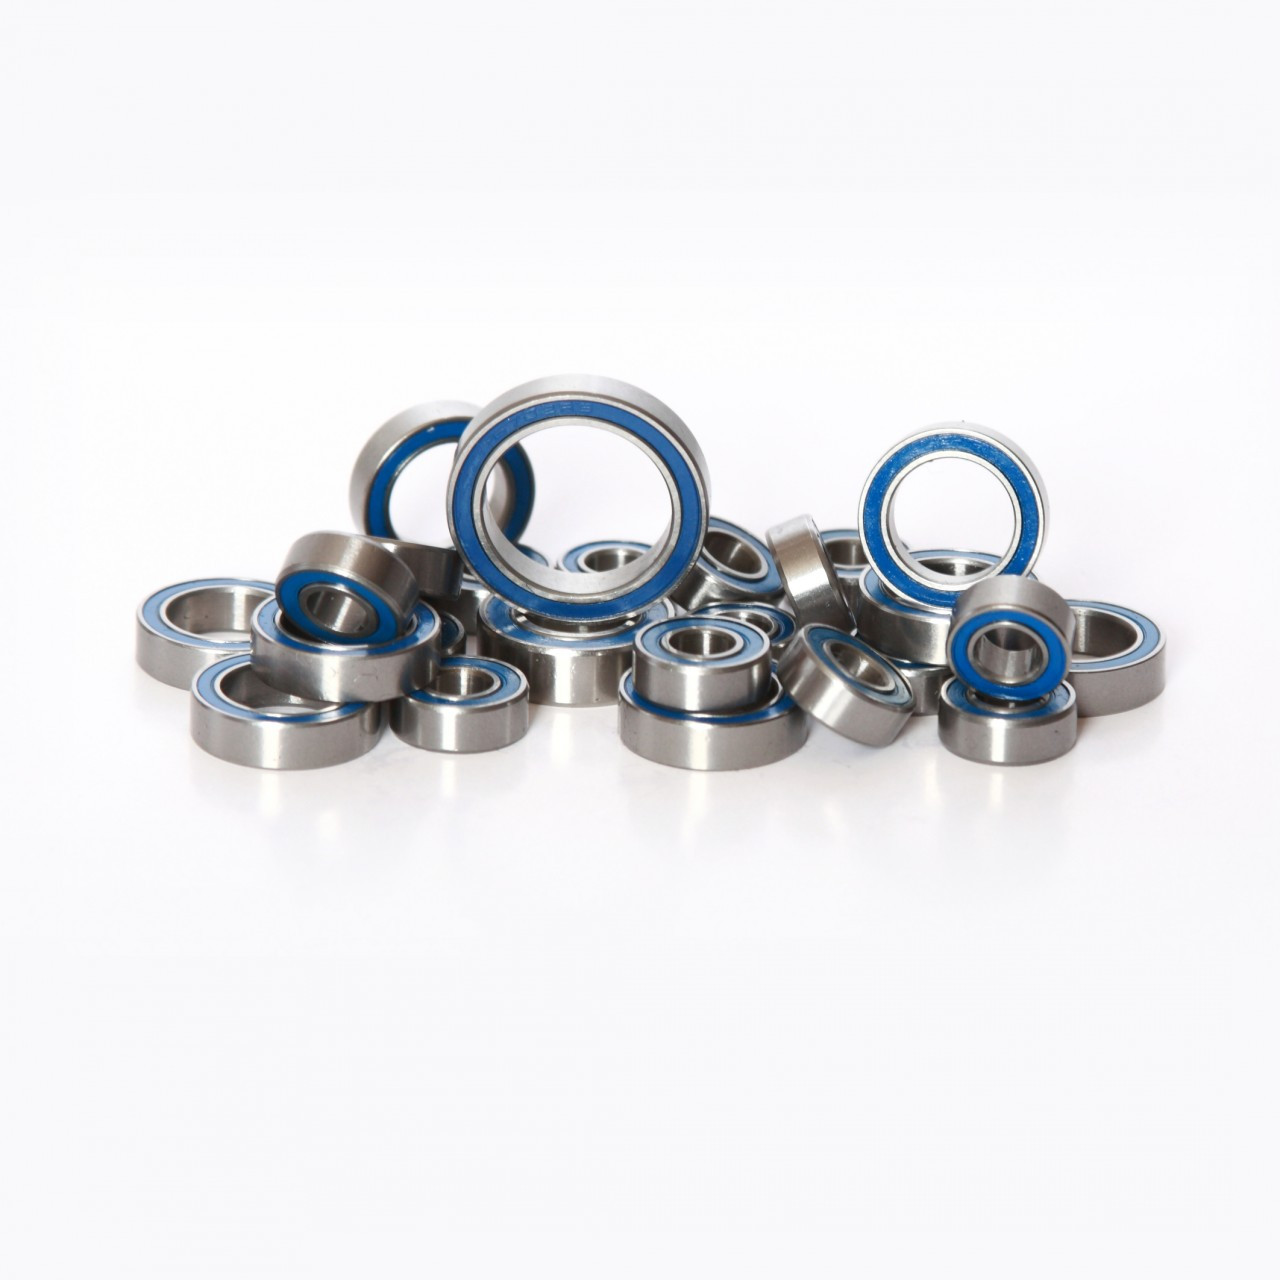 Axial Wraith 27 Piece blue rubber sealed bearing kit from Fullforce RC.